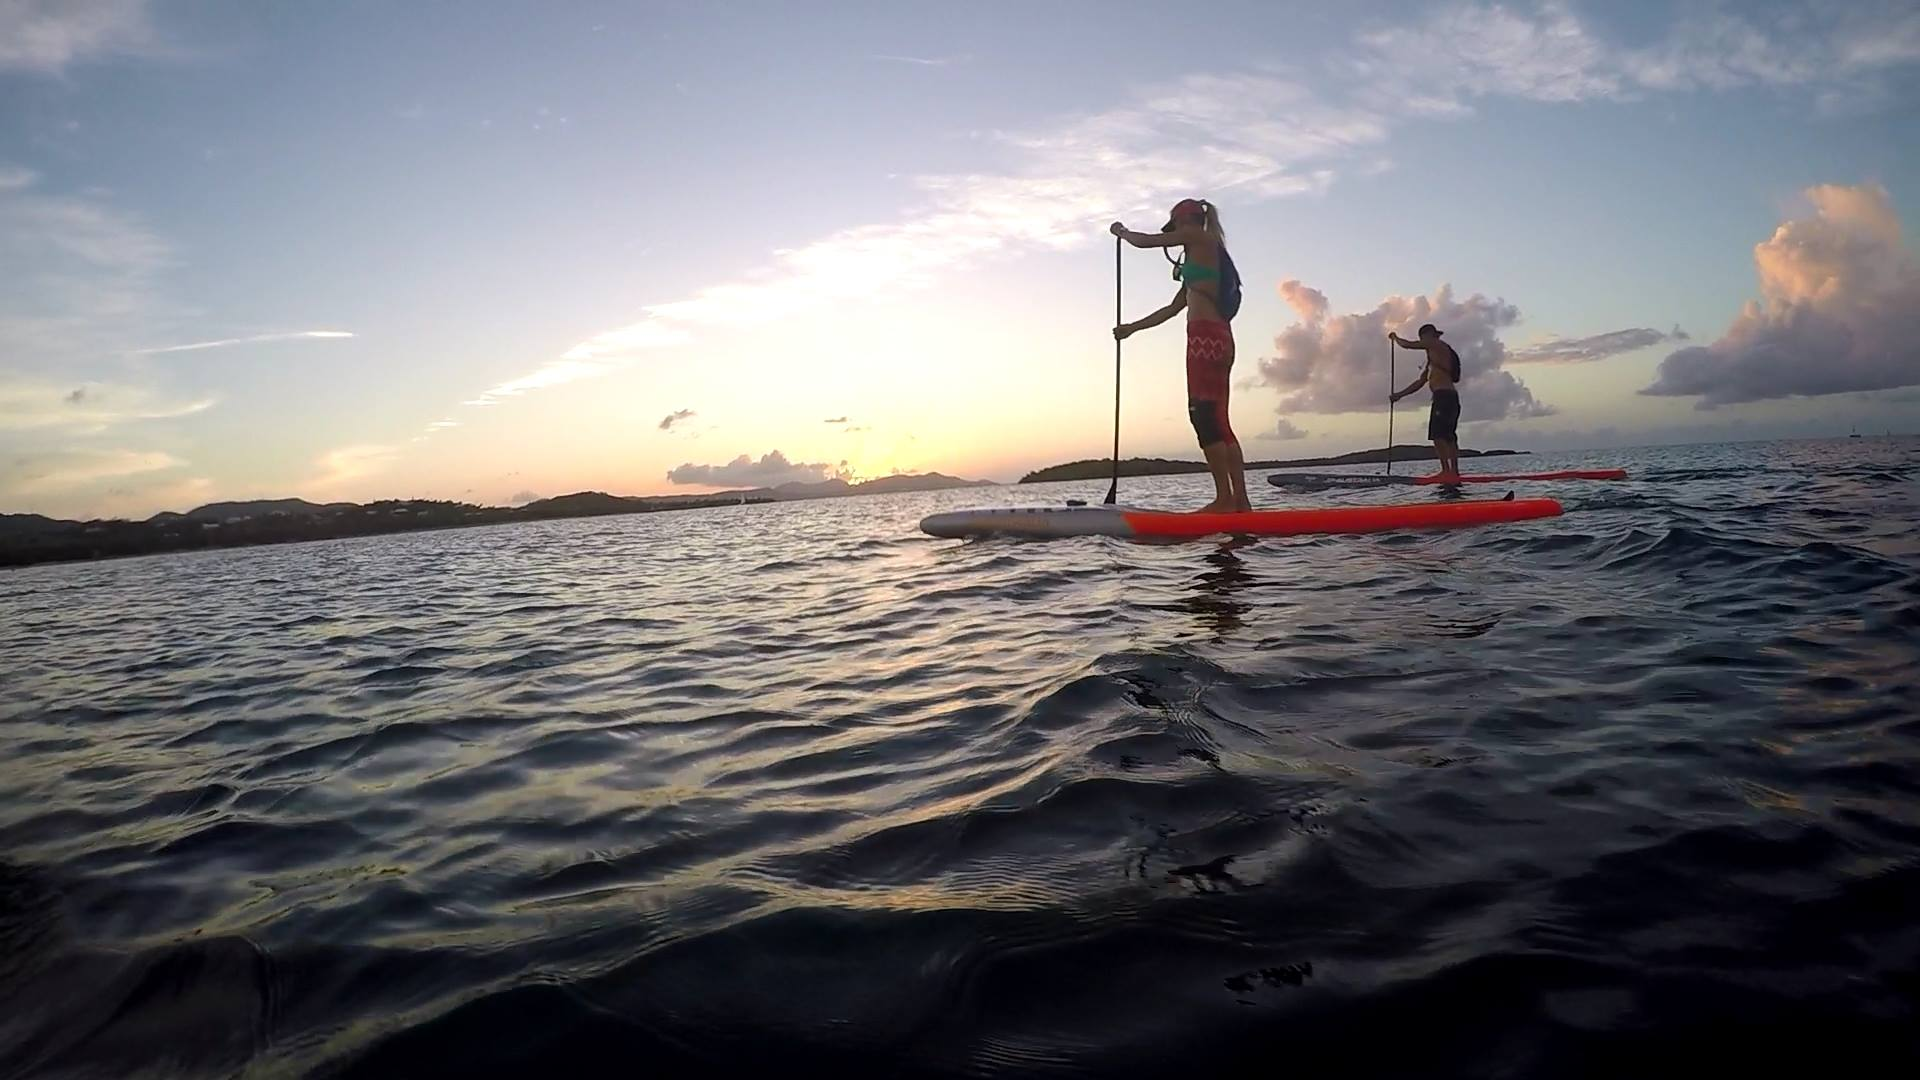 paddleboarders enjoying a sunset at chenay bay beach resort on st. croix